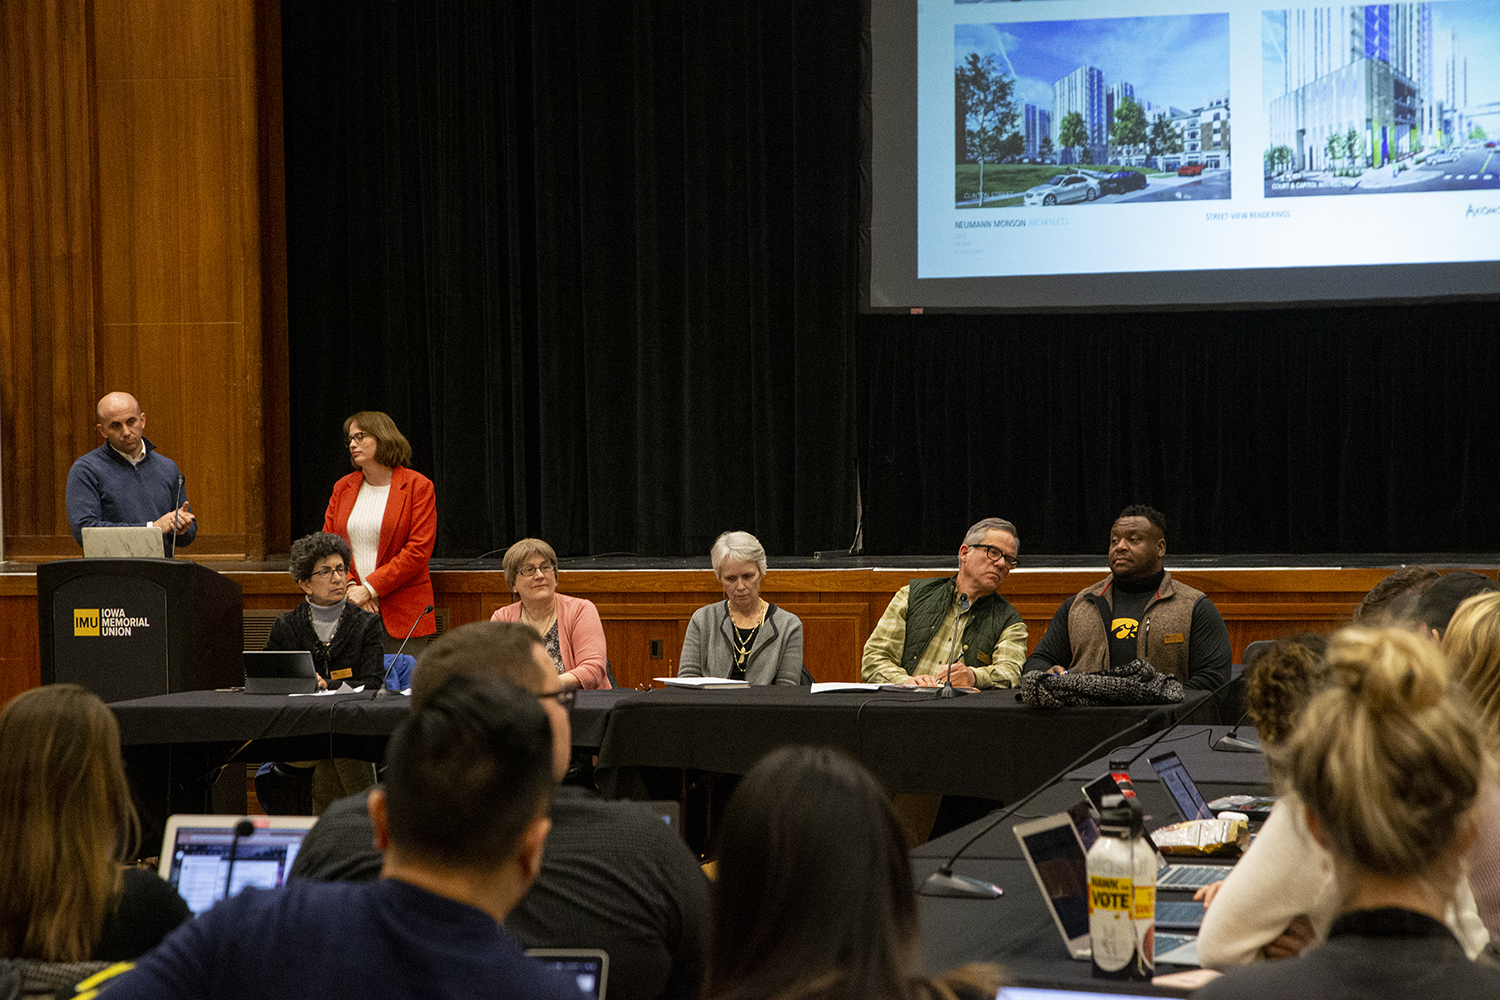 Members of the Iowa City City Council sit before the two UI student governments for a discussion about a proposed development project in downtown Iowa City during a joint meeting on Feb 11.